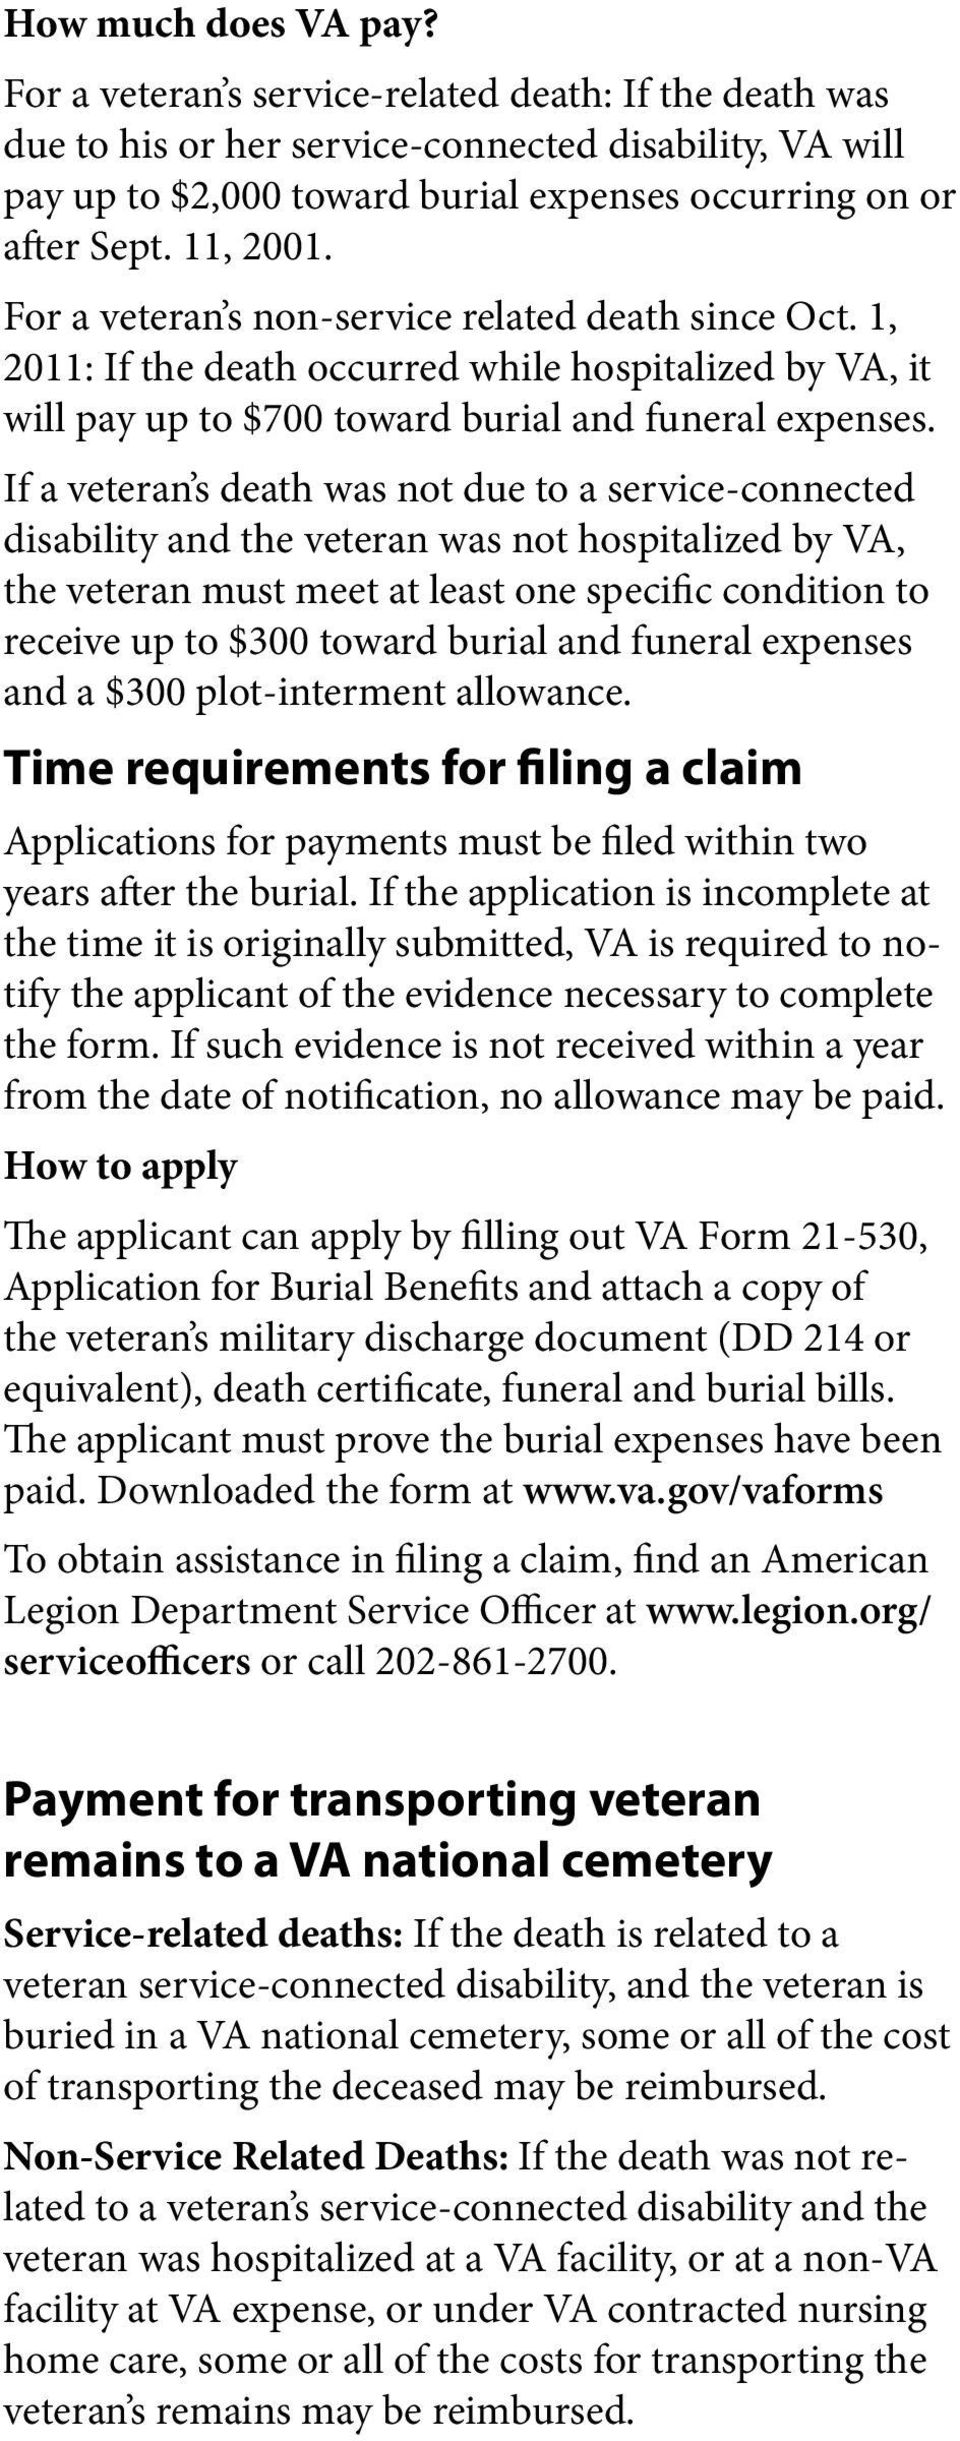 For a veteran s non-service related death since Oct. 1, 2011: If the death occurred while hospitalized by VA, it will pay up to $700 toward burial and funeral expenses.